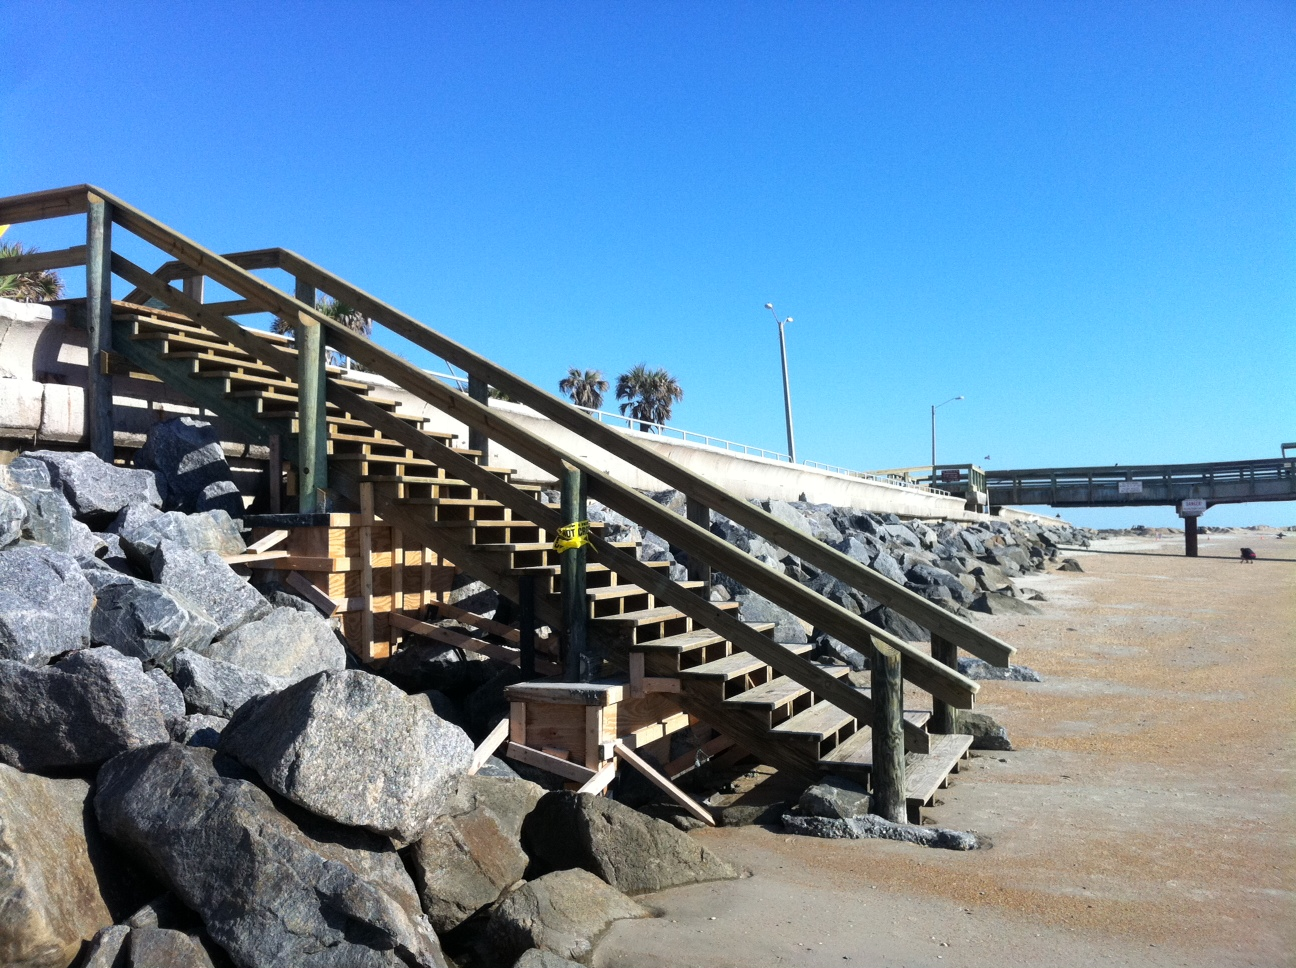 Lovely Side View Of Stairs With Pier In The Background